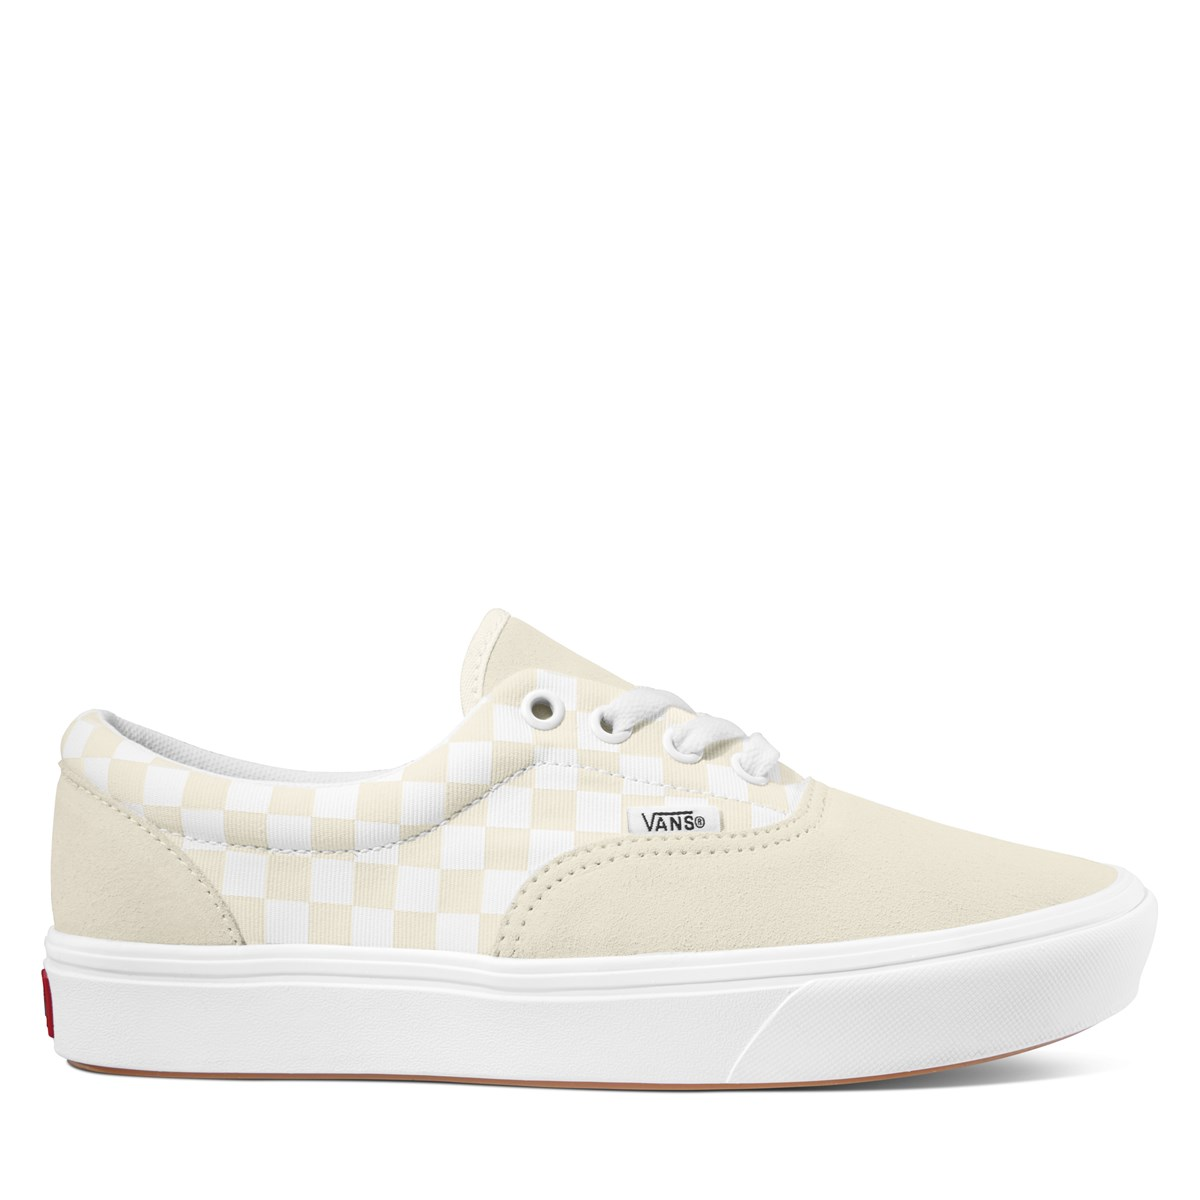 Women's ComfyCush Checkerboard Era Sneakers in Beige